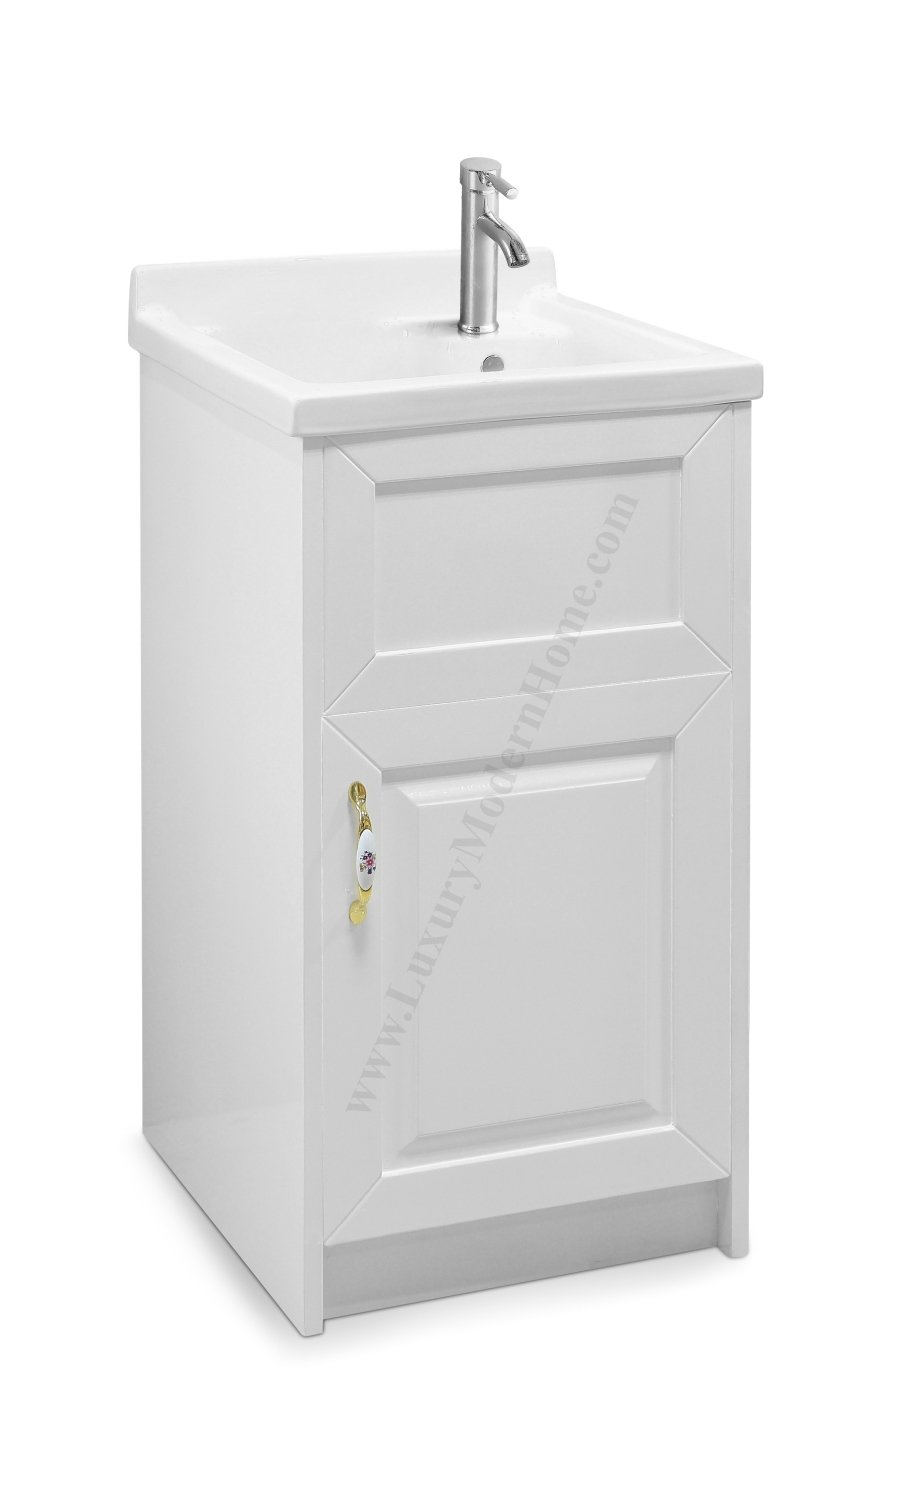 Get Quotations Sink Alexander 18 White Utility Modern Mop Slop Tub Deep Ceramic Laundry